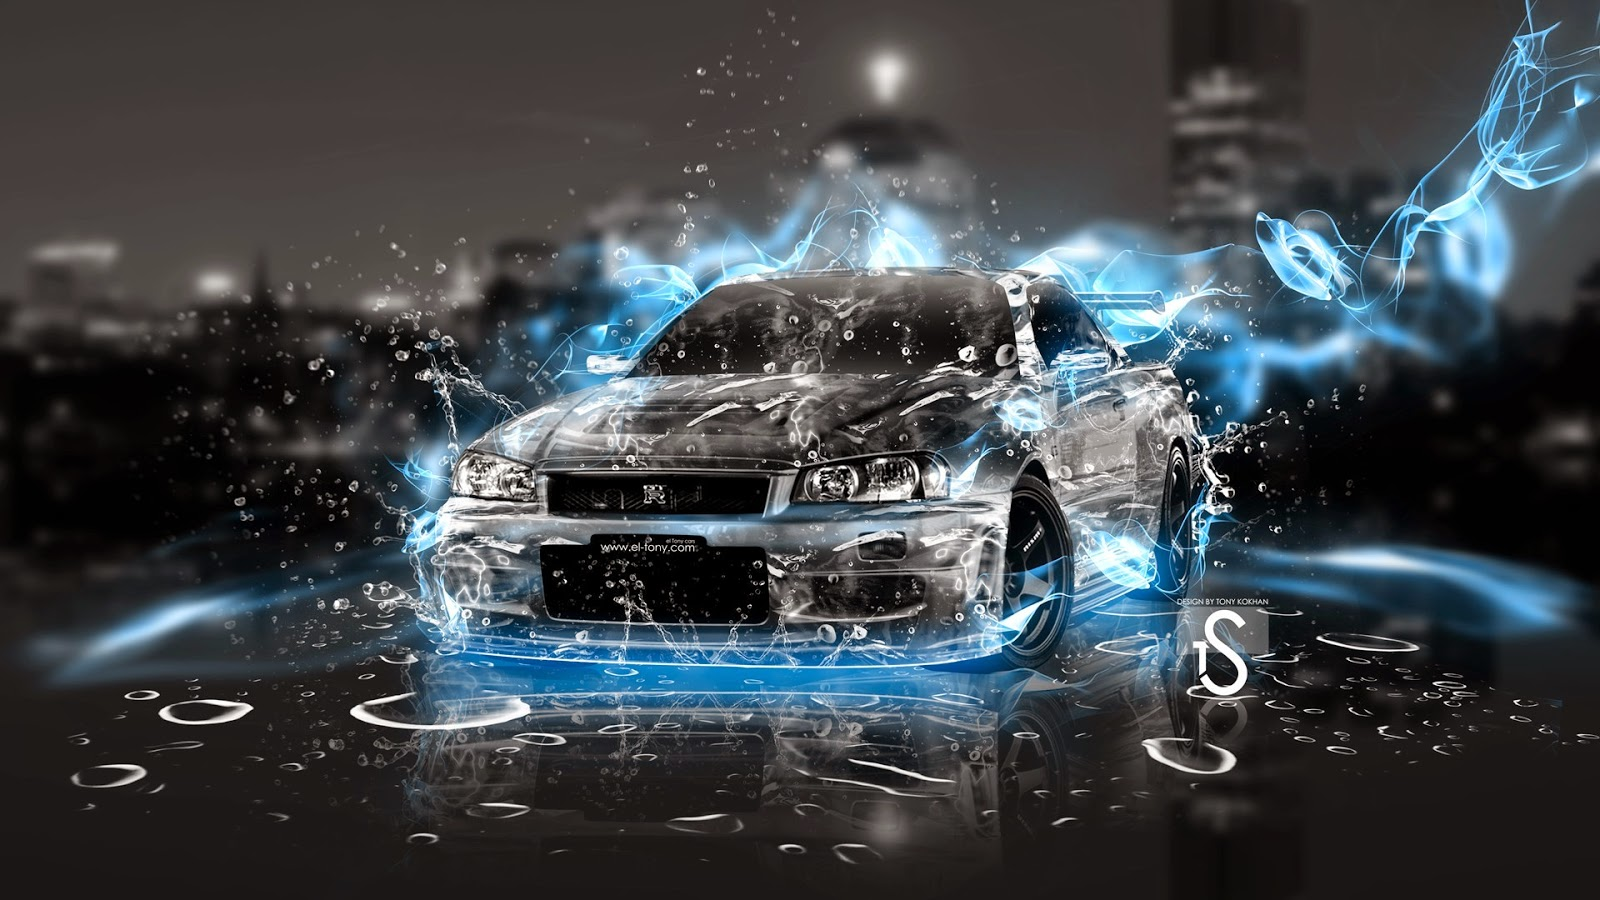 Cool Wallpapers - Car with Blue Fire ~ Free 4D Wallpaper